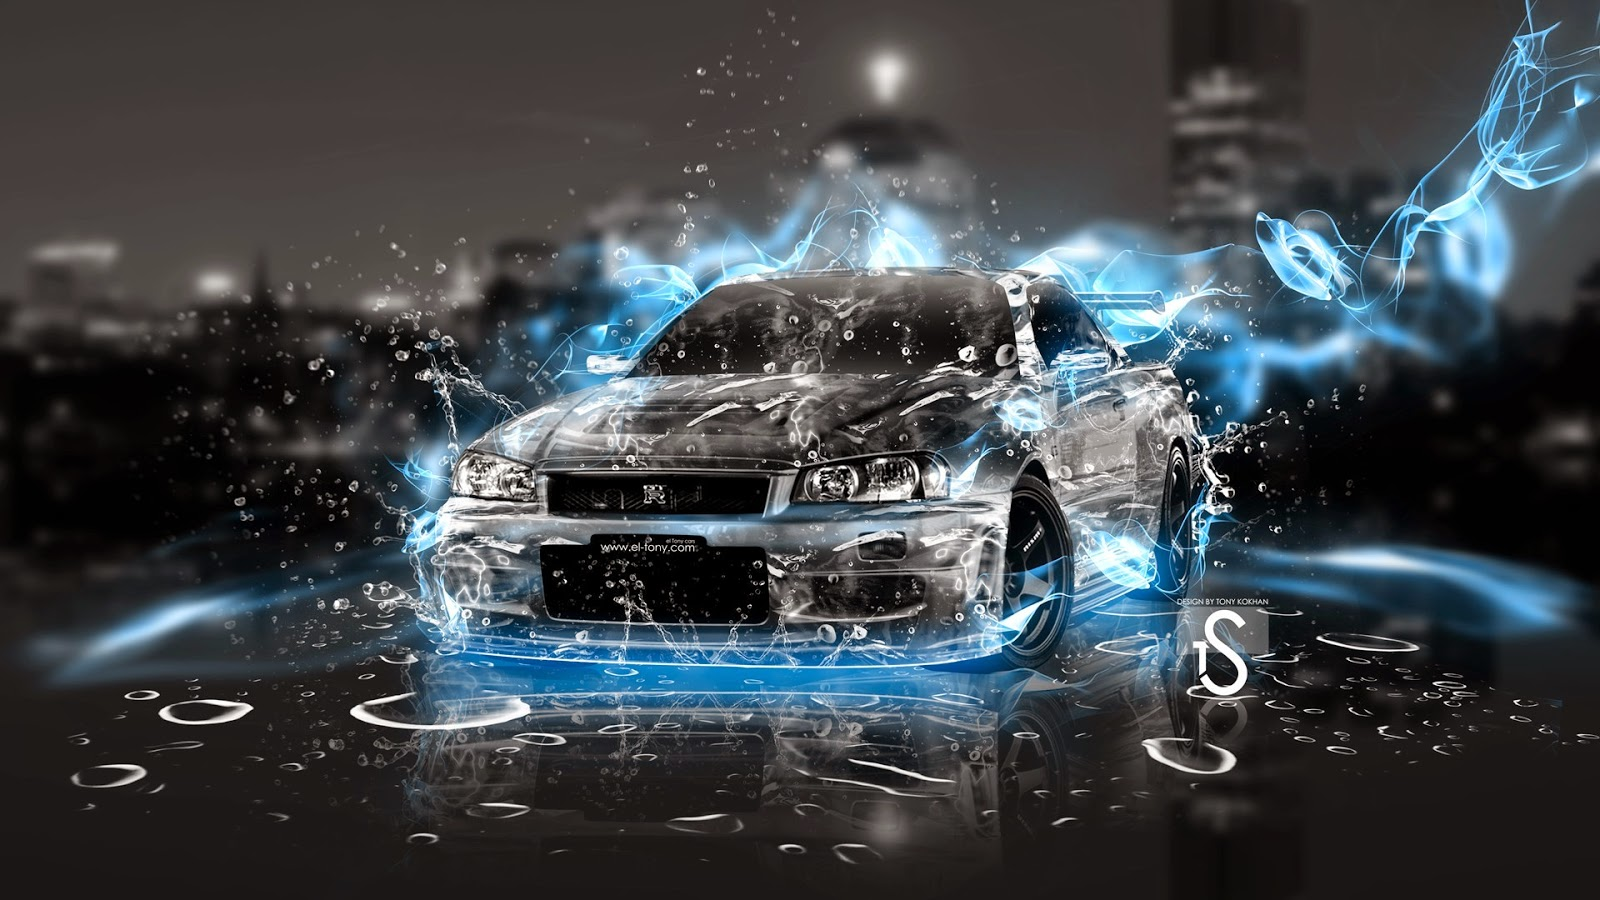 Cool Wallpapers - Car with Blue Fire ~ Free 4D Wallpaper